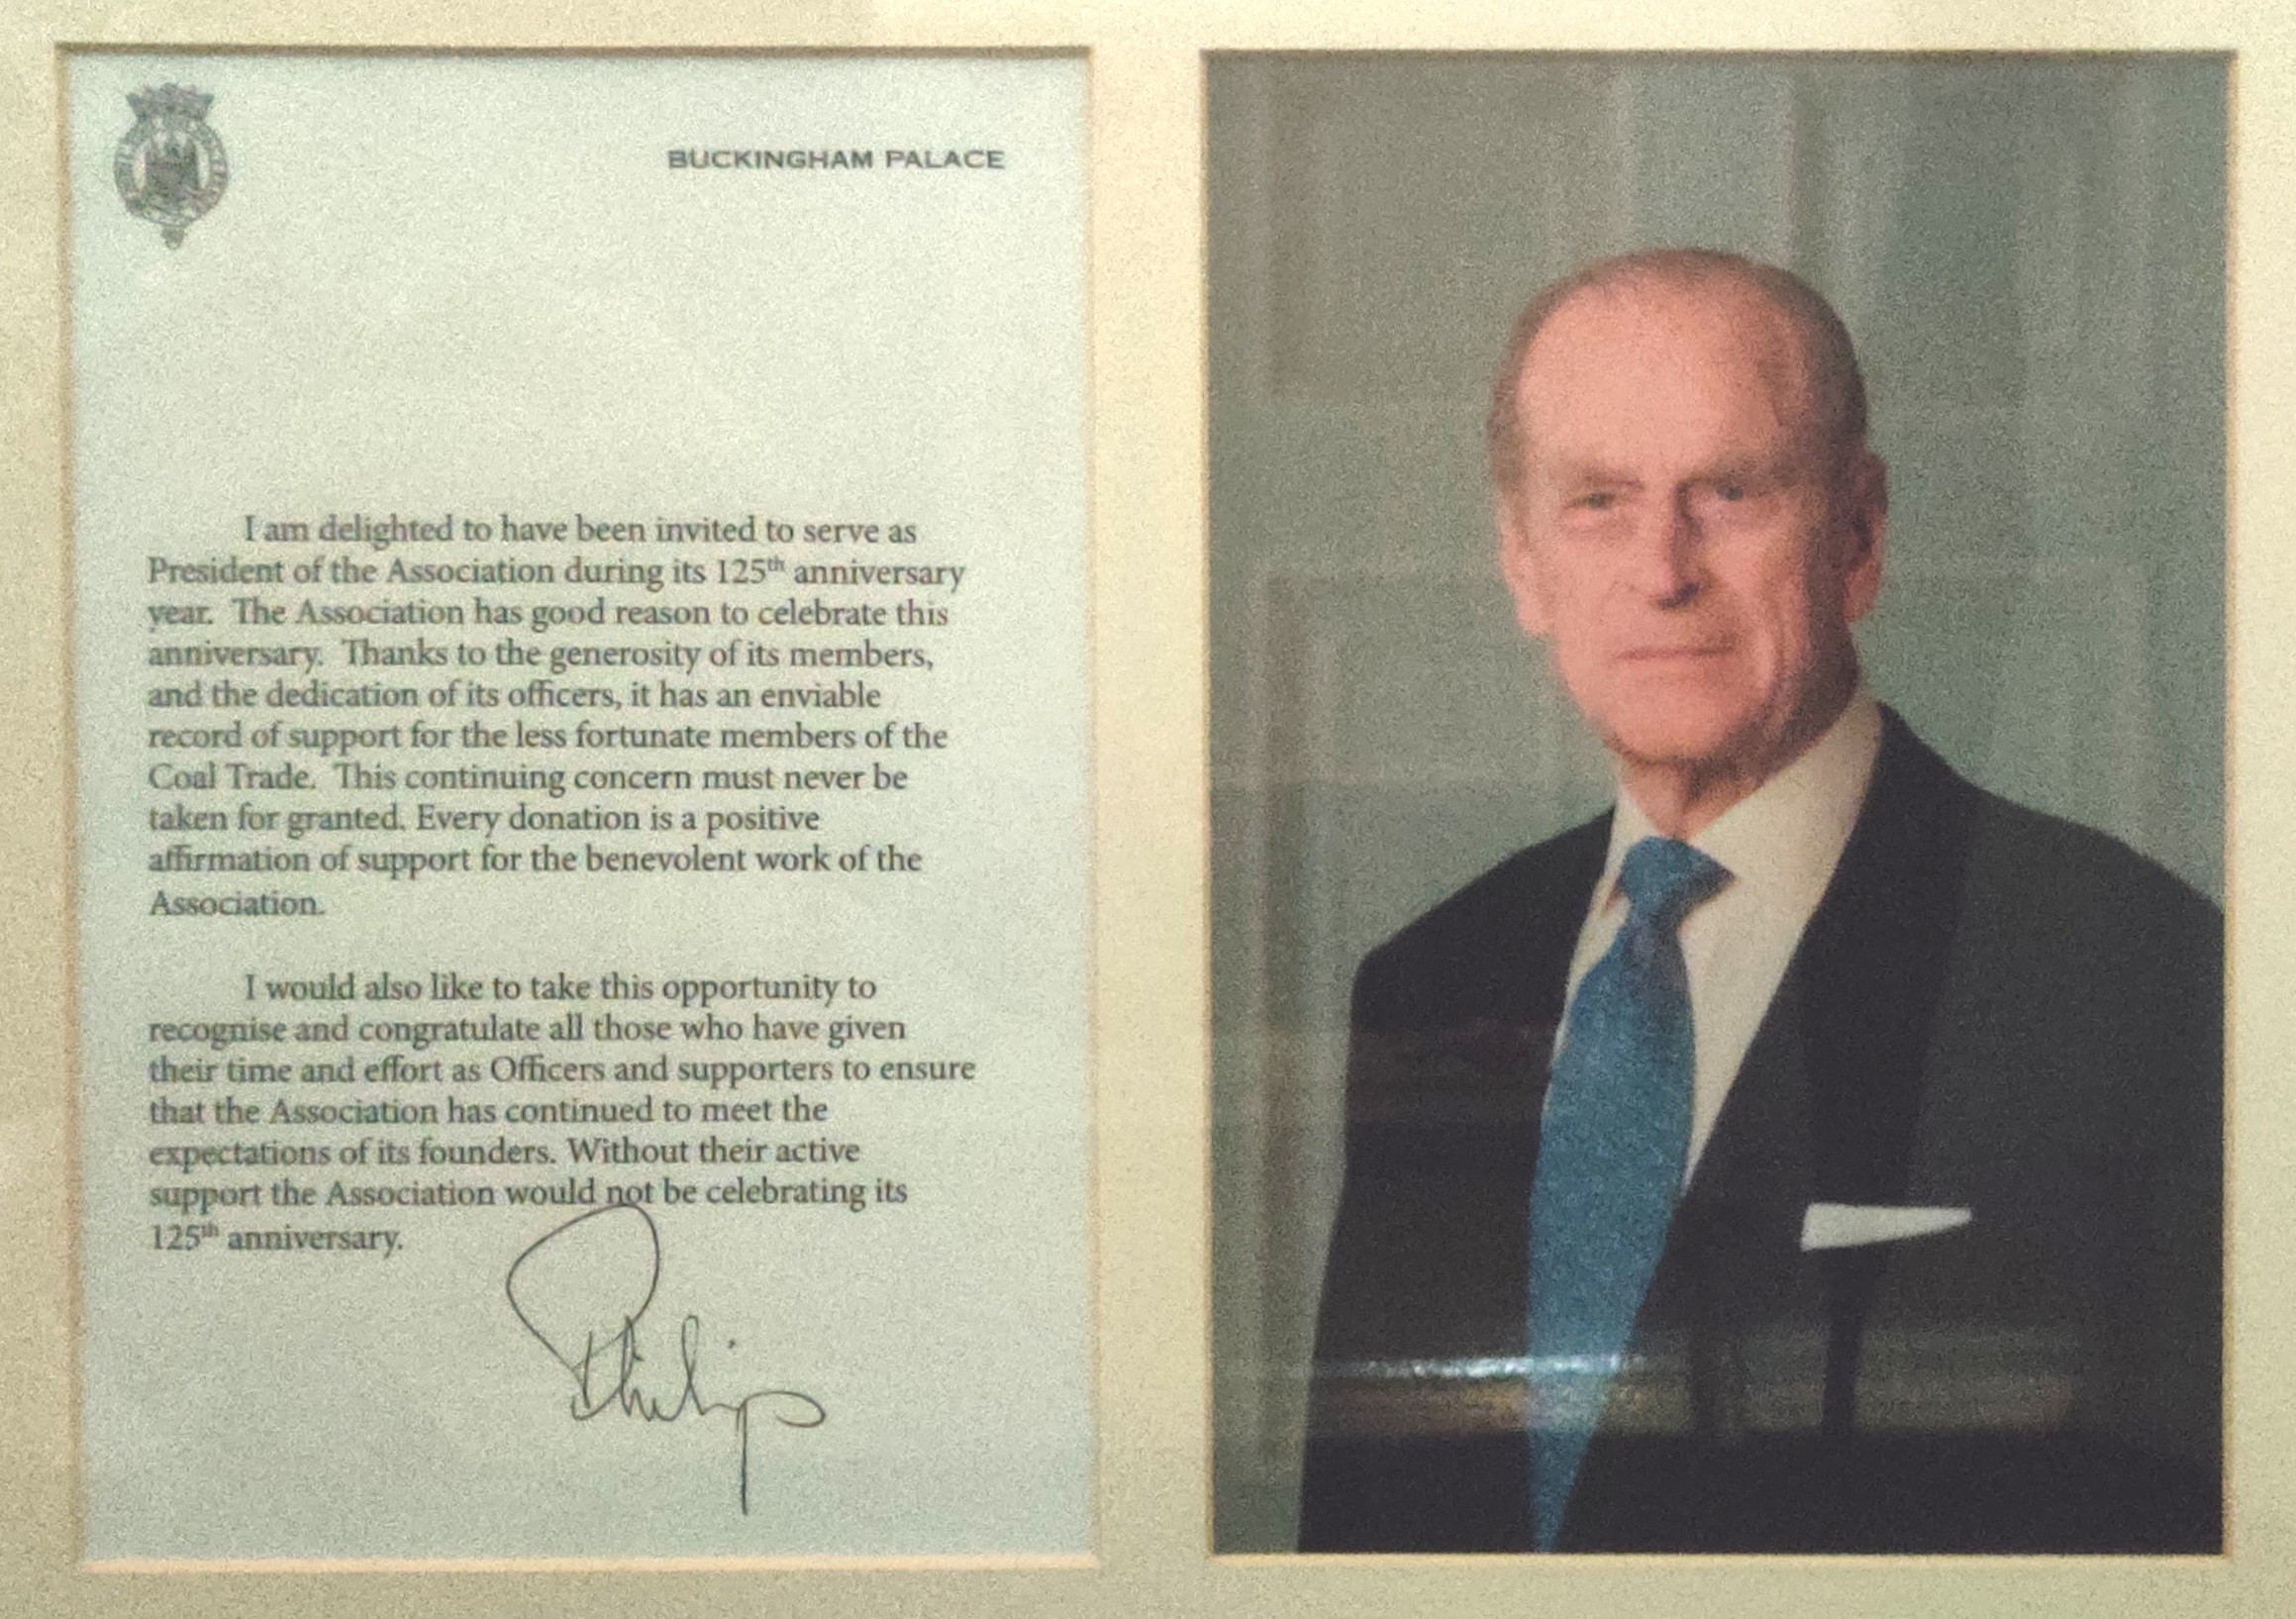 Letter from His Royal Highness